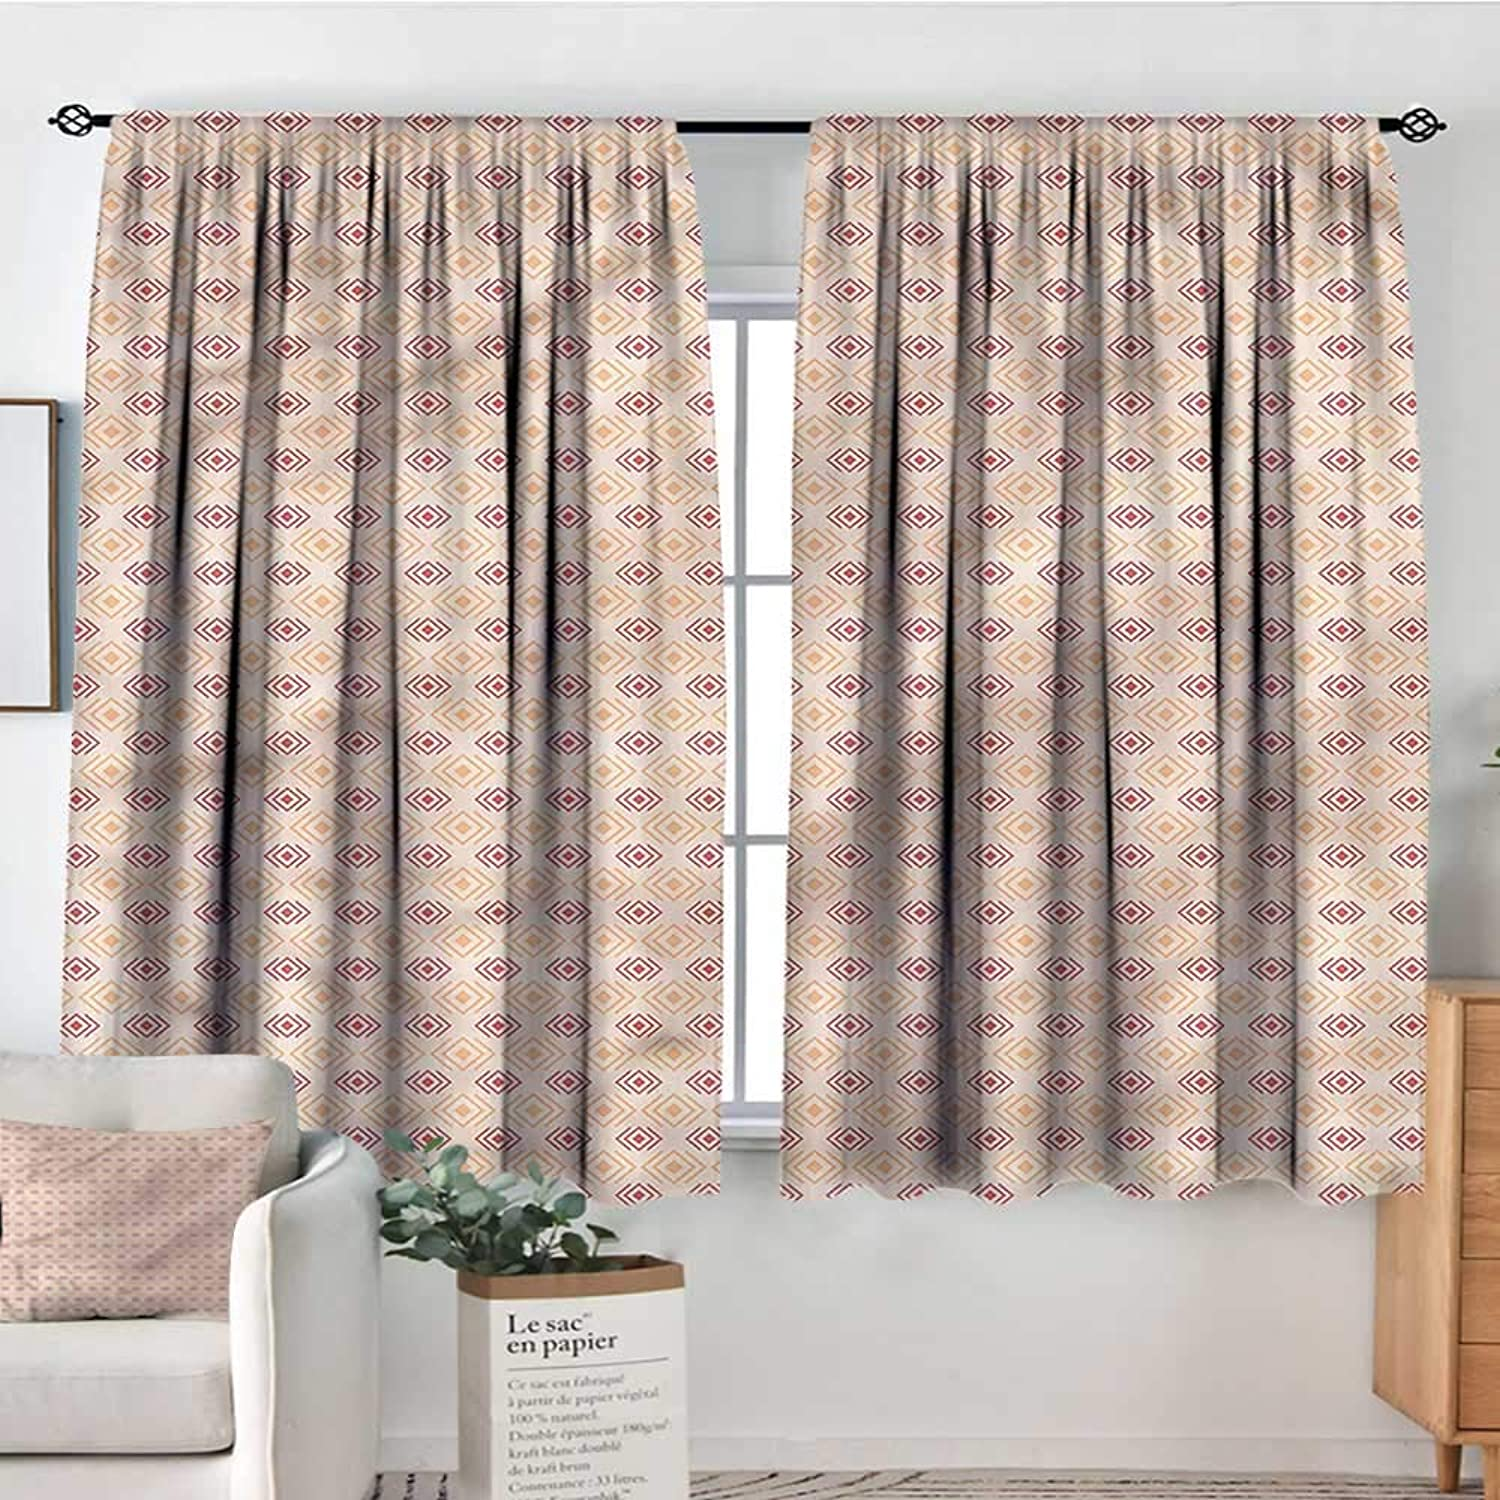 Geometric,Boy's Iving Room Curtain Checked Diagonal Tile 42 X63  Indo Treatments for Short Indo